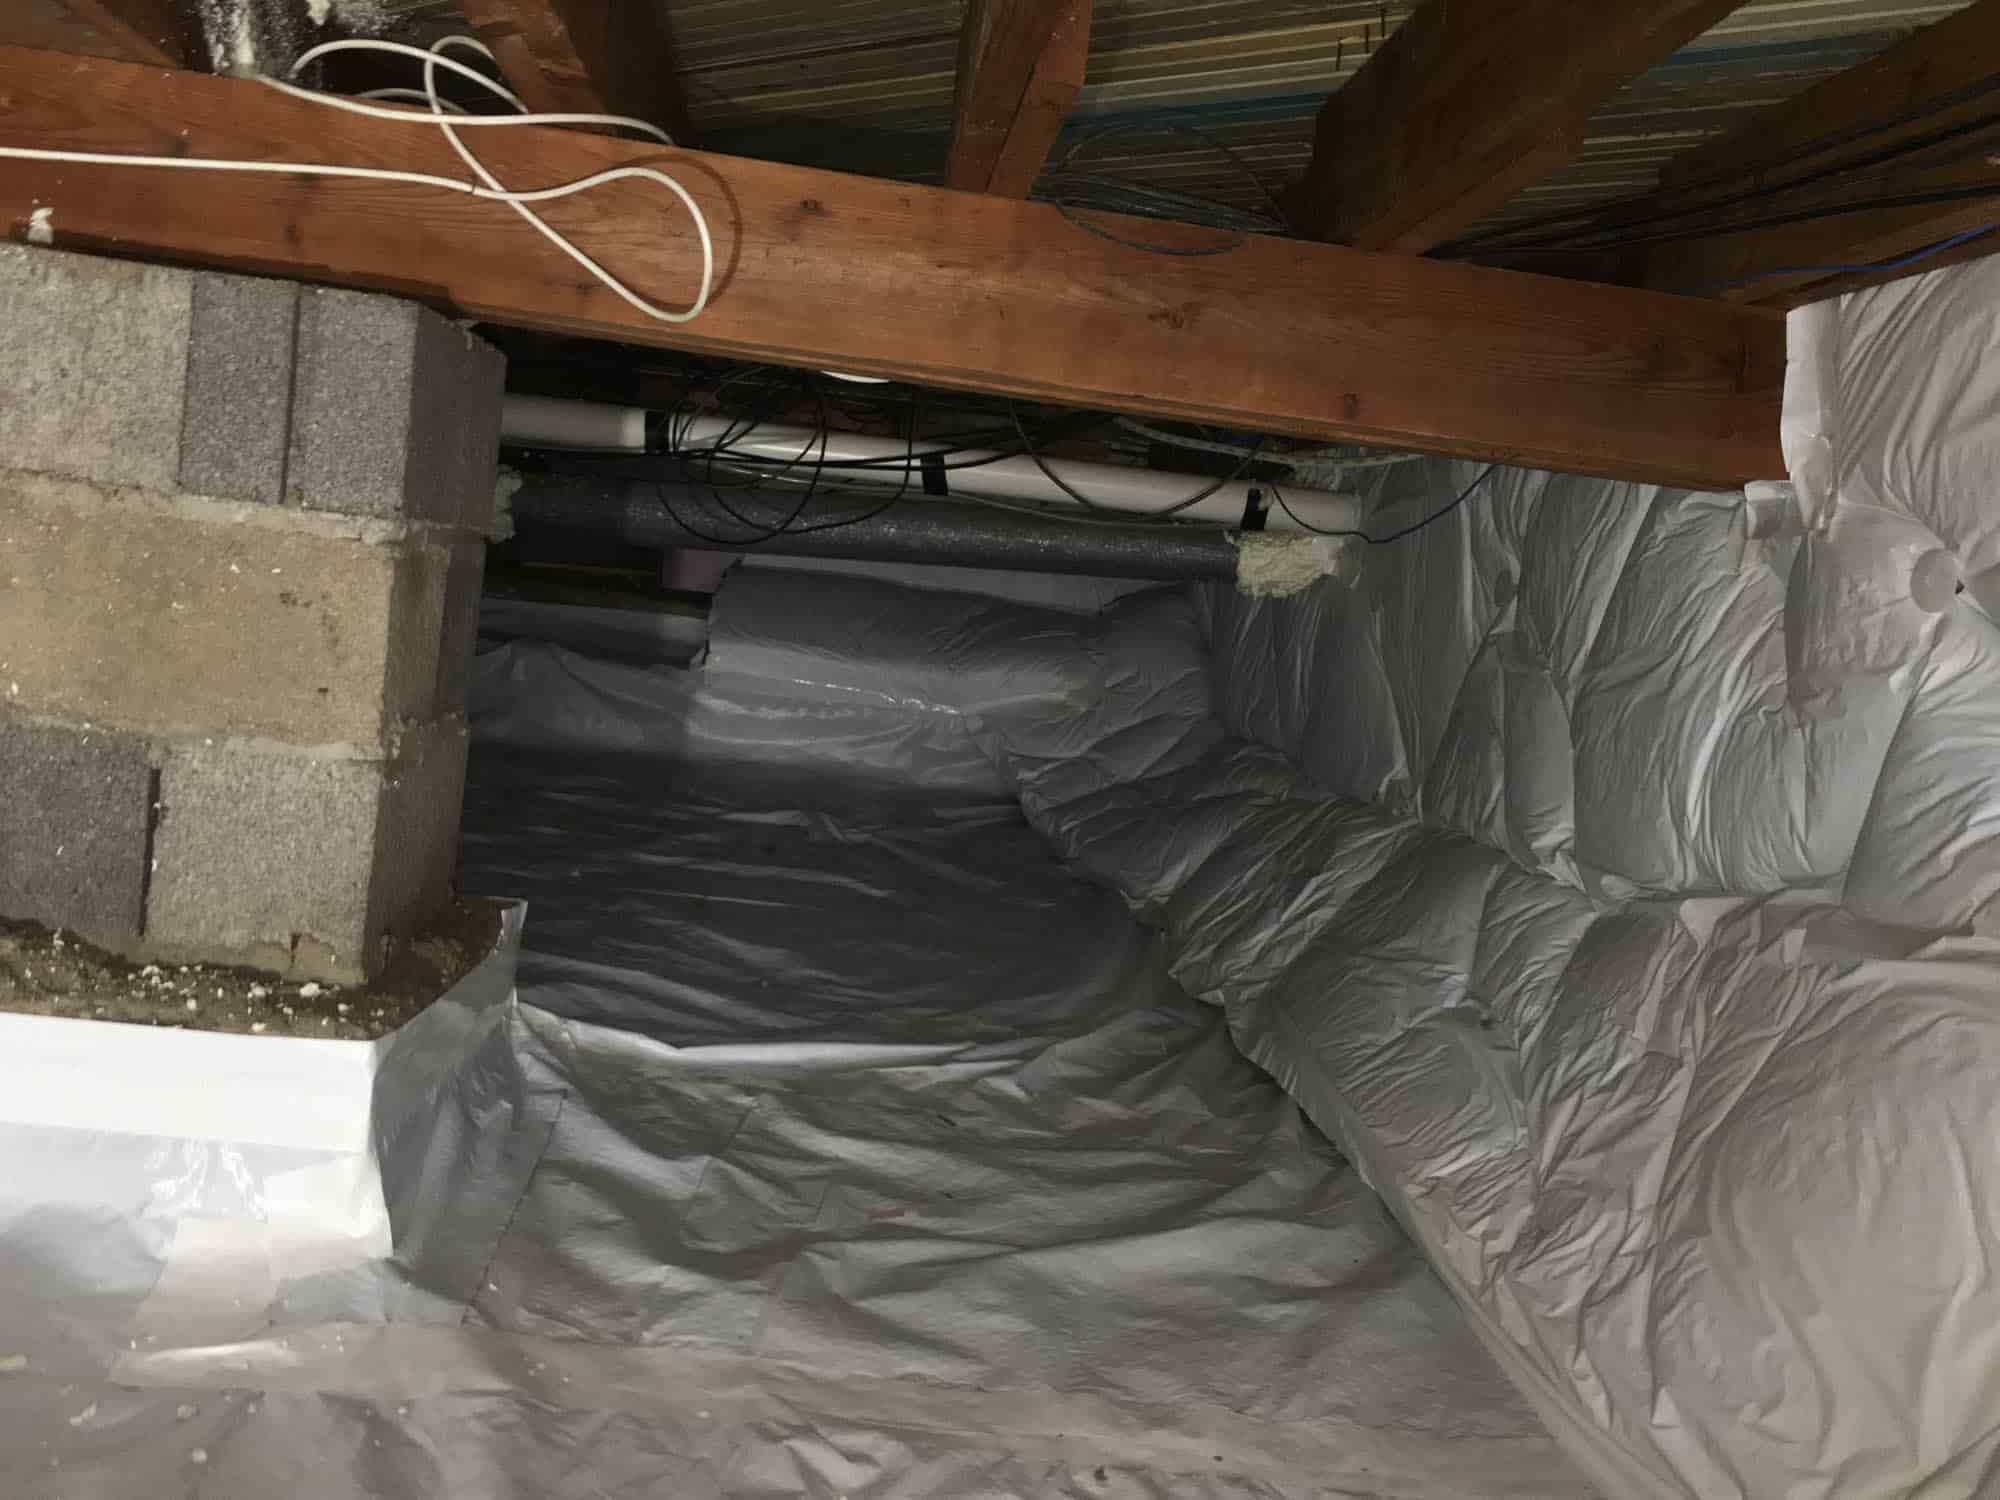 Crawl Space After Insulation in Denver